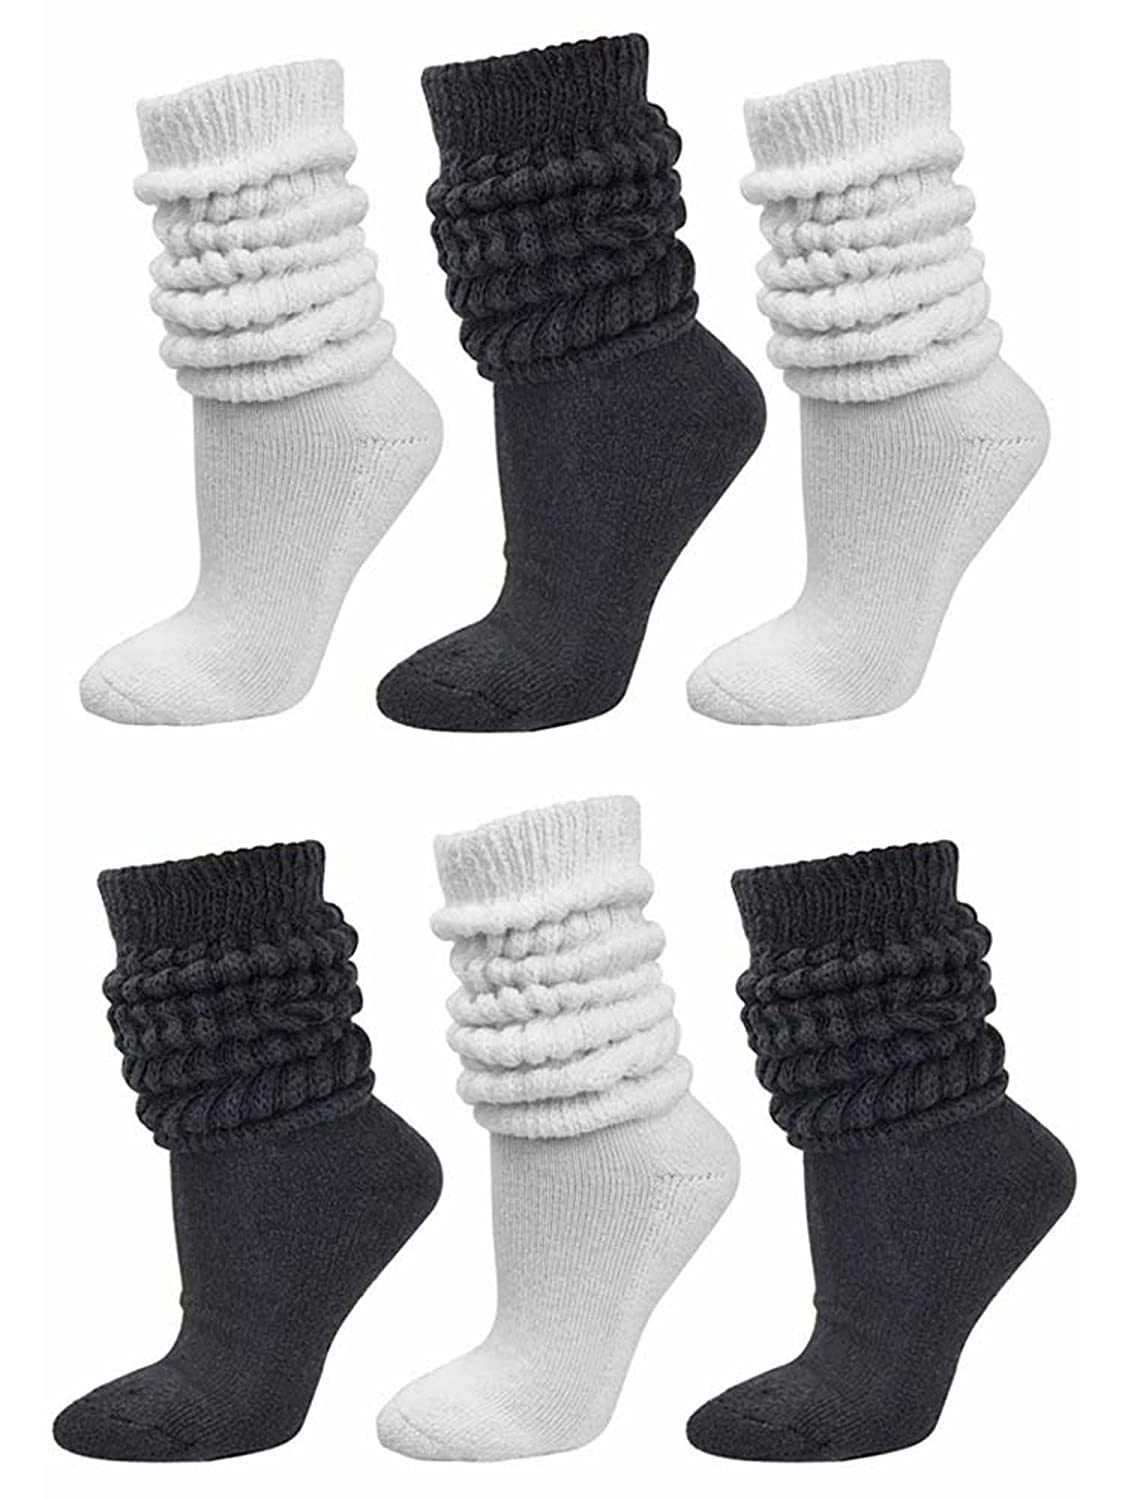 Black /& White All Cotton 6-Pack Extra Heavy Super Slouch Socks